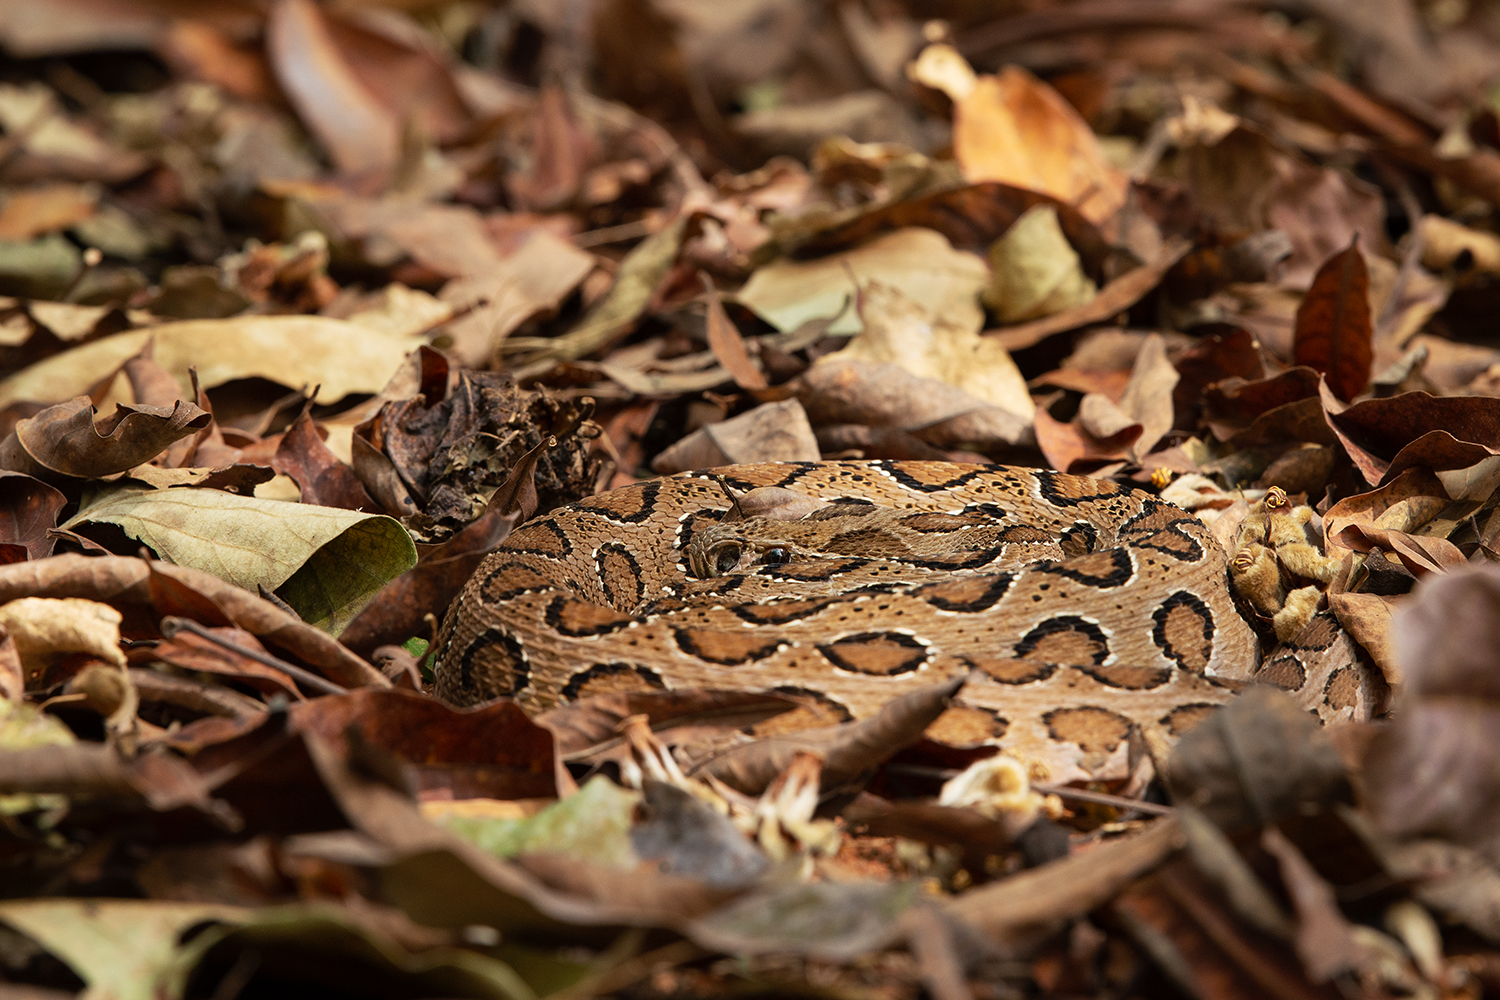 The Russell's viper is striking to behold, and best admired outside striking range. A member of the Big Four venomous snakes of India, it is found across the country and most of Southeast Asia. An Old World species, it does not have nasal pits, though recent studies indicate they do have heat-sensing abilities. Photo: Shreeram MV